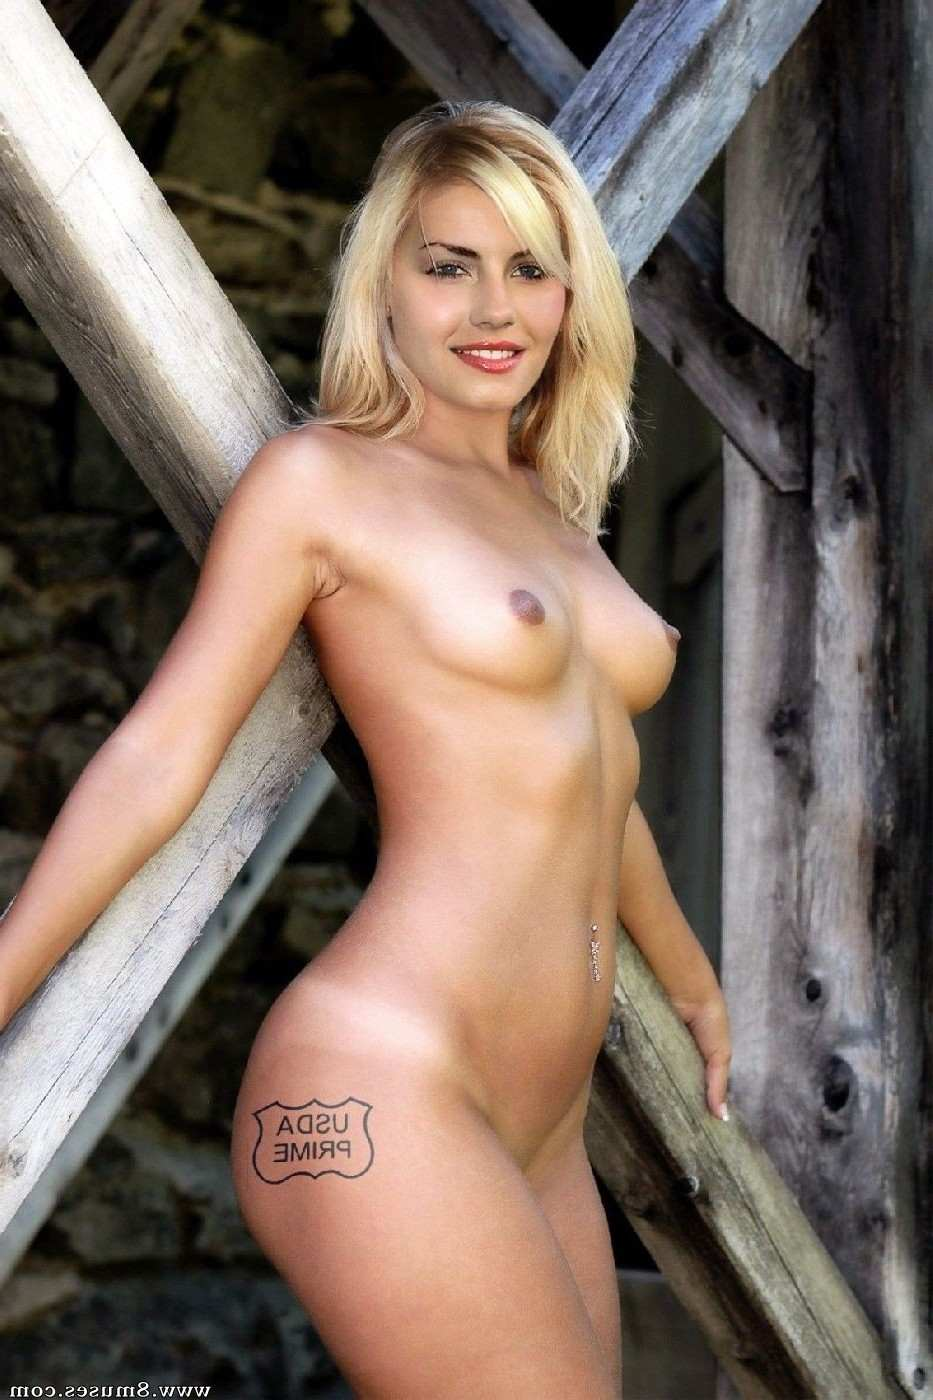 Fake-Celebrities-Sex-Pictures/Elisha-Cuthbert Elisha_Cuthbert__8muses_-_Sex_and_Porn_Comics_164.jpg